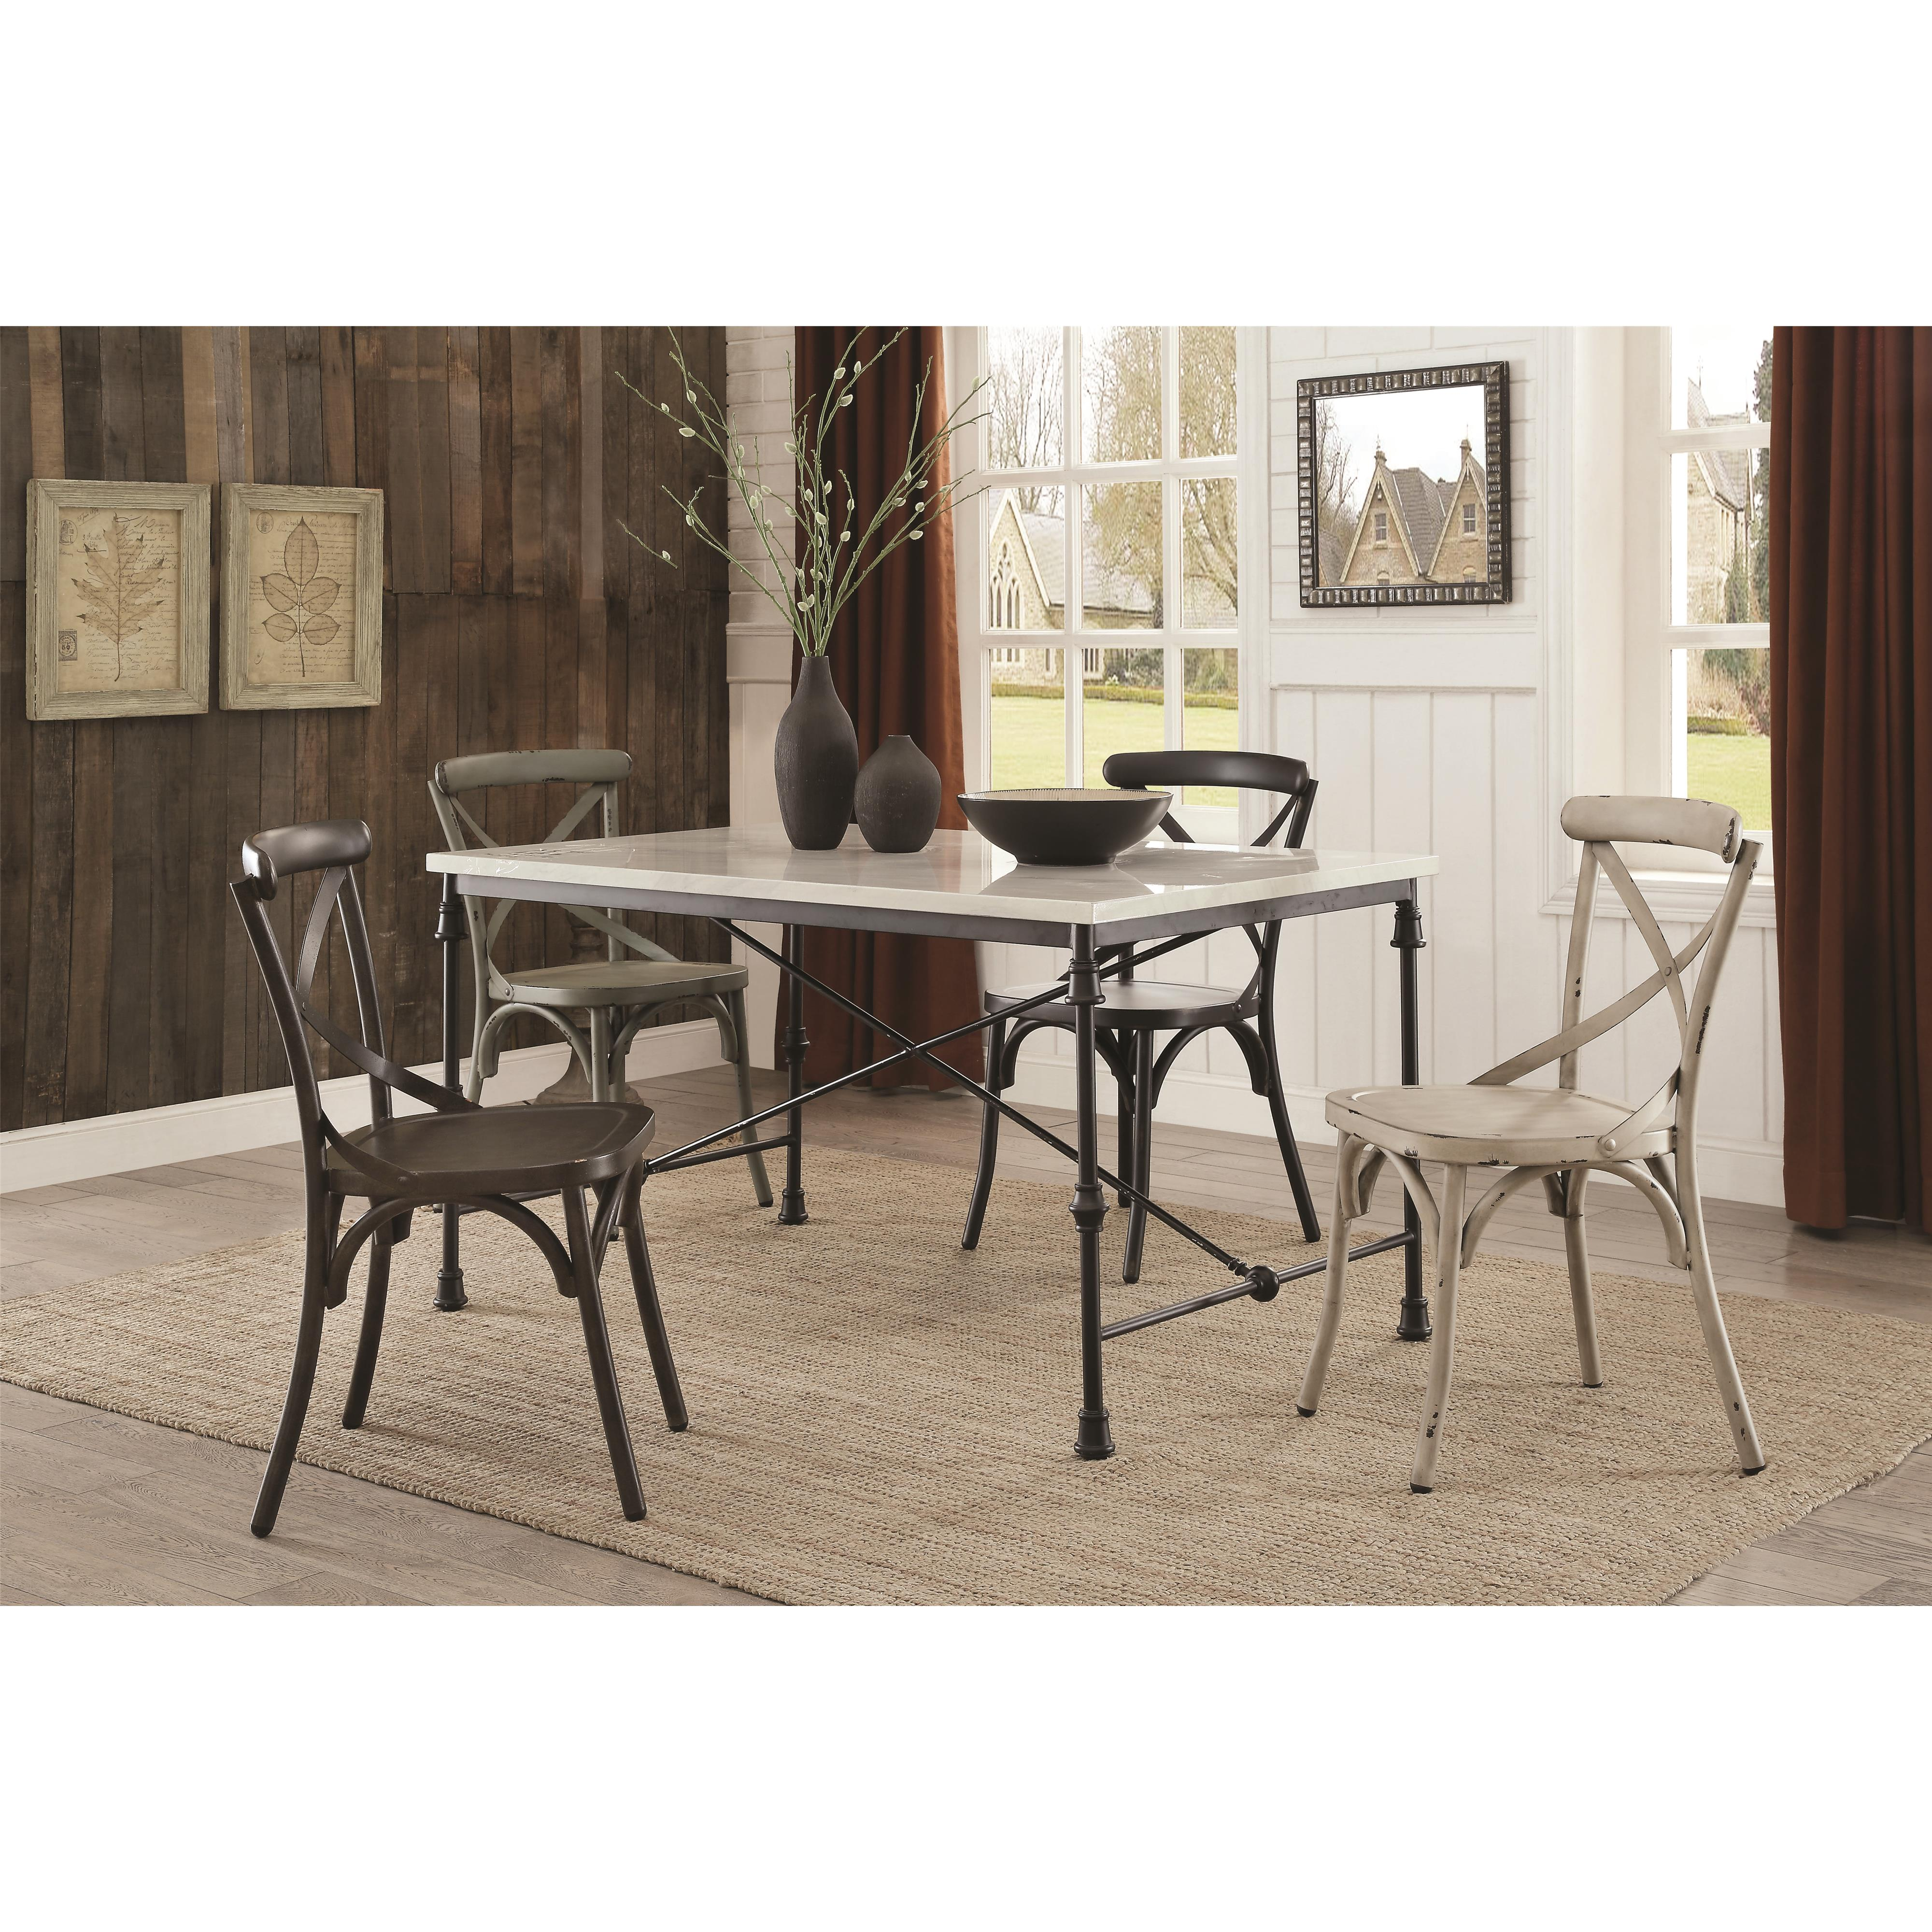 rustic metal dining chairs folding chair price in india nagel  white quality